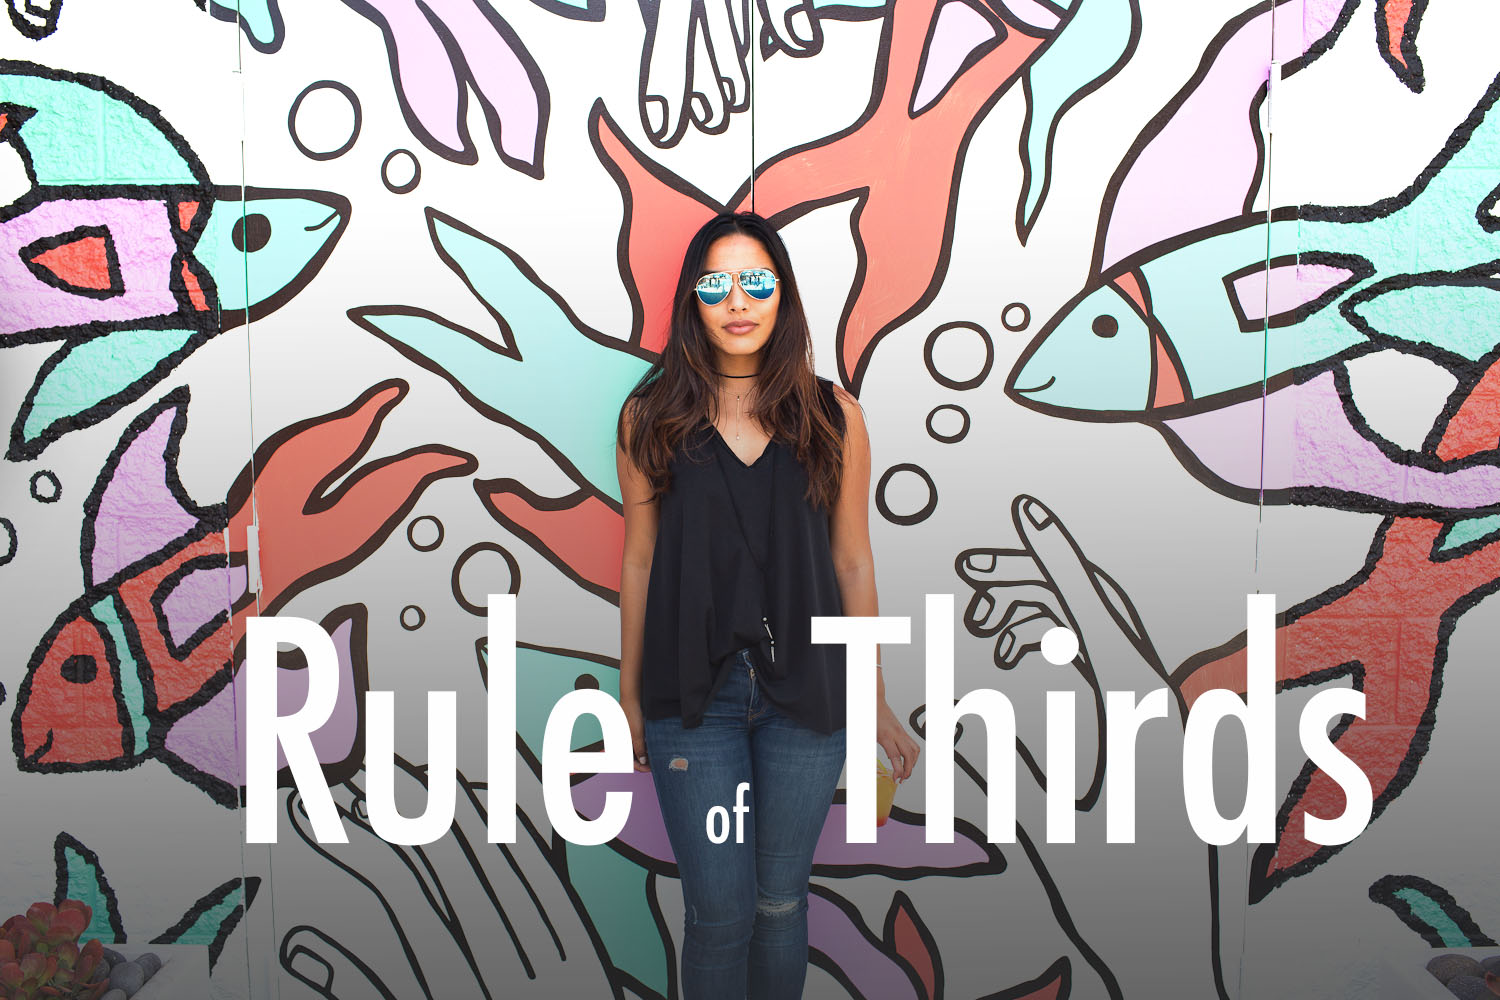 Rule of Thirds photography